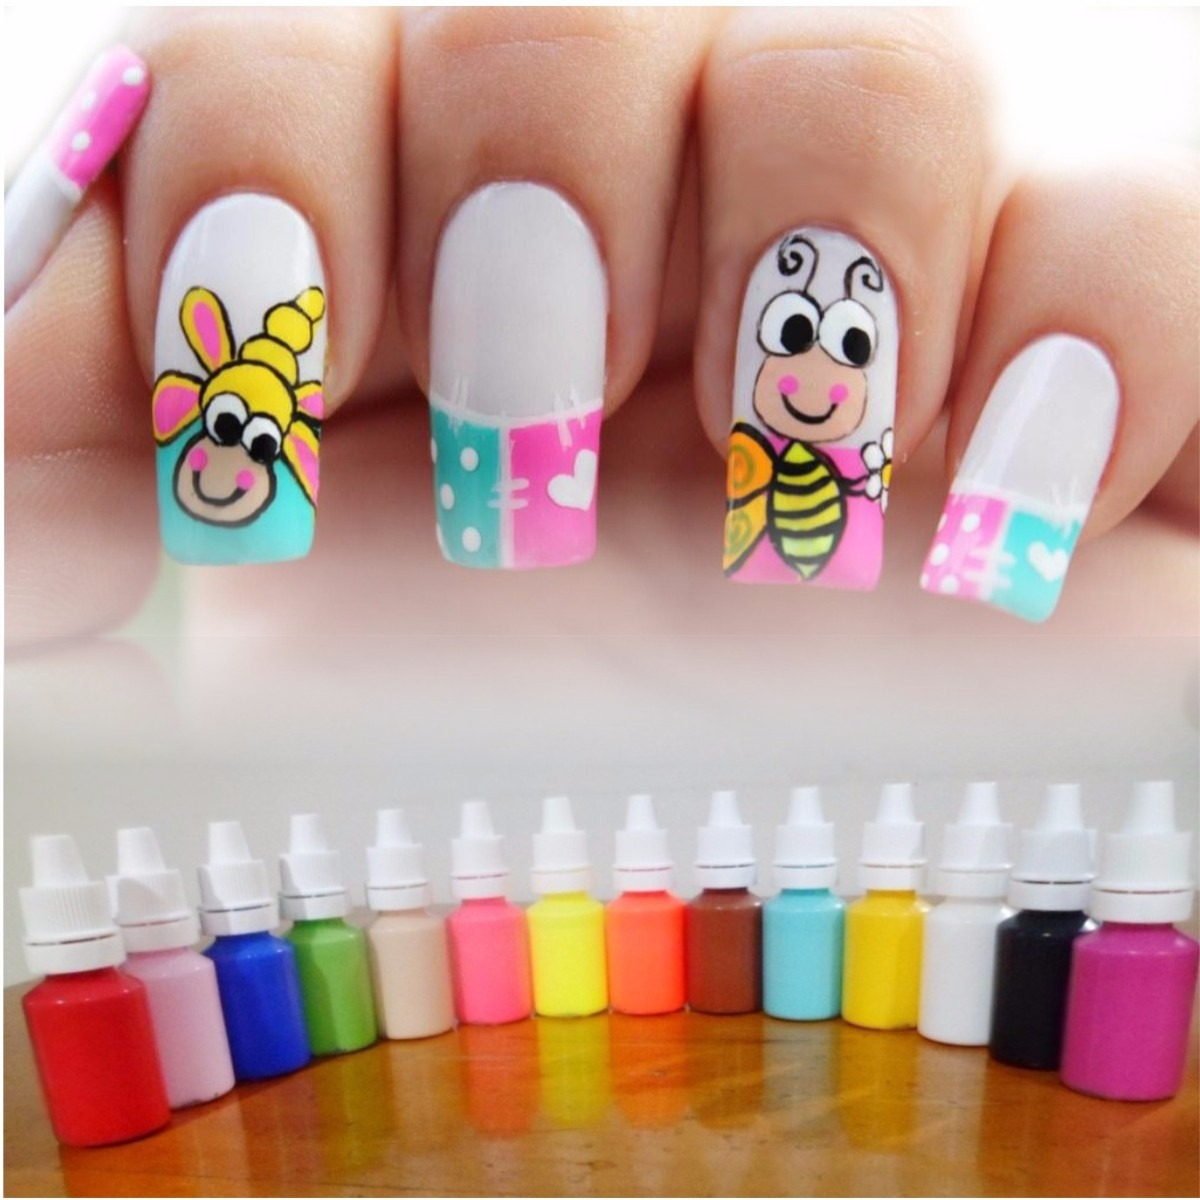 Kit de 12 pinturas acr licas nail art decoraci n u as for Como anotarse en procrear 2016